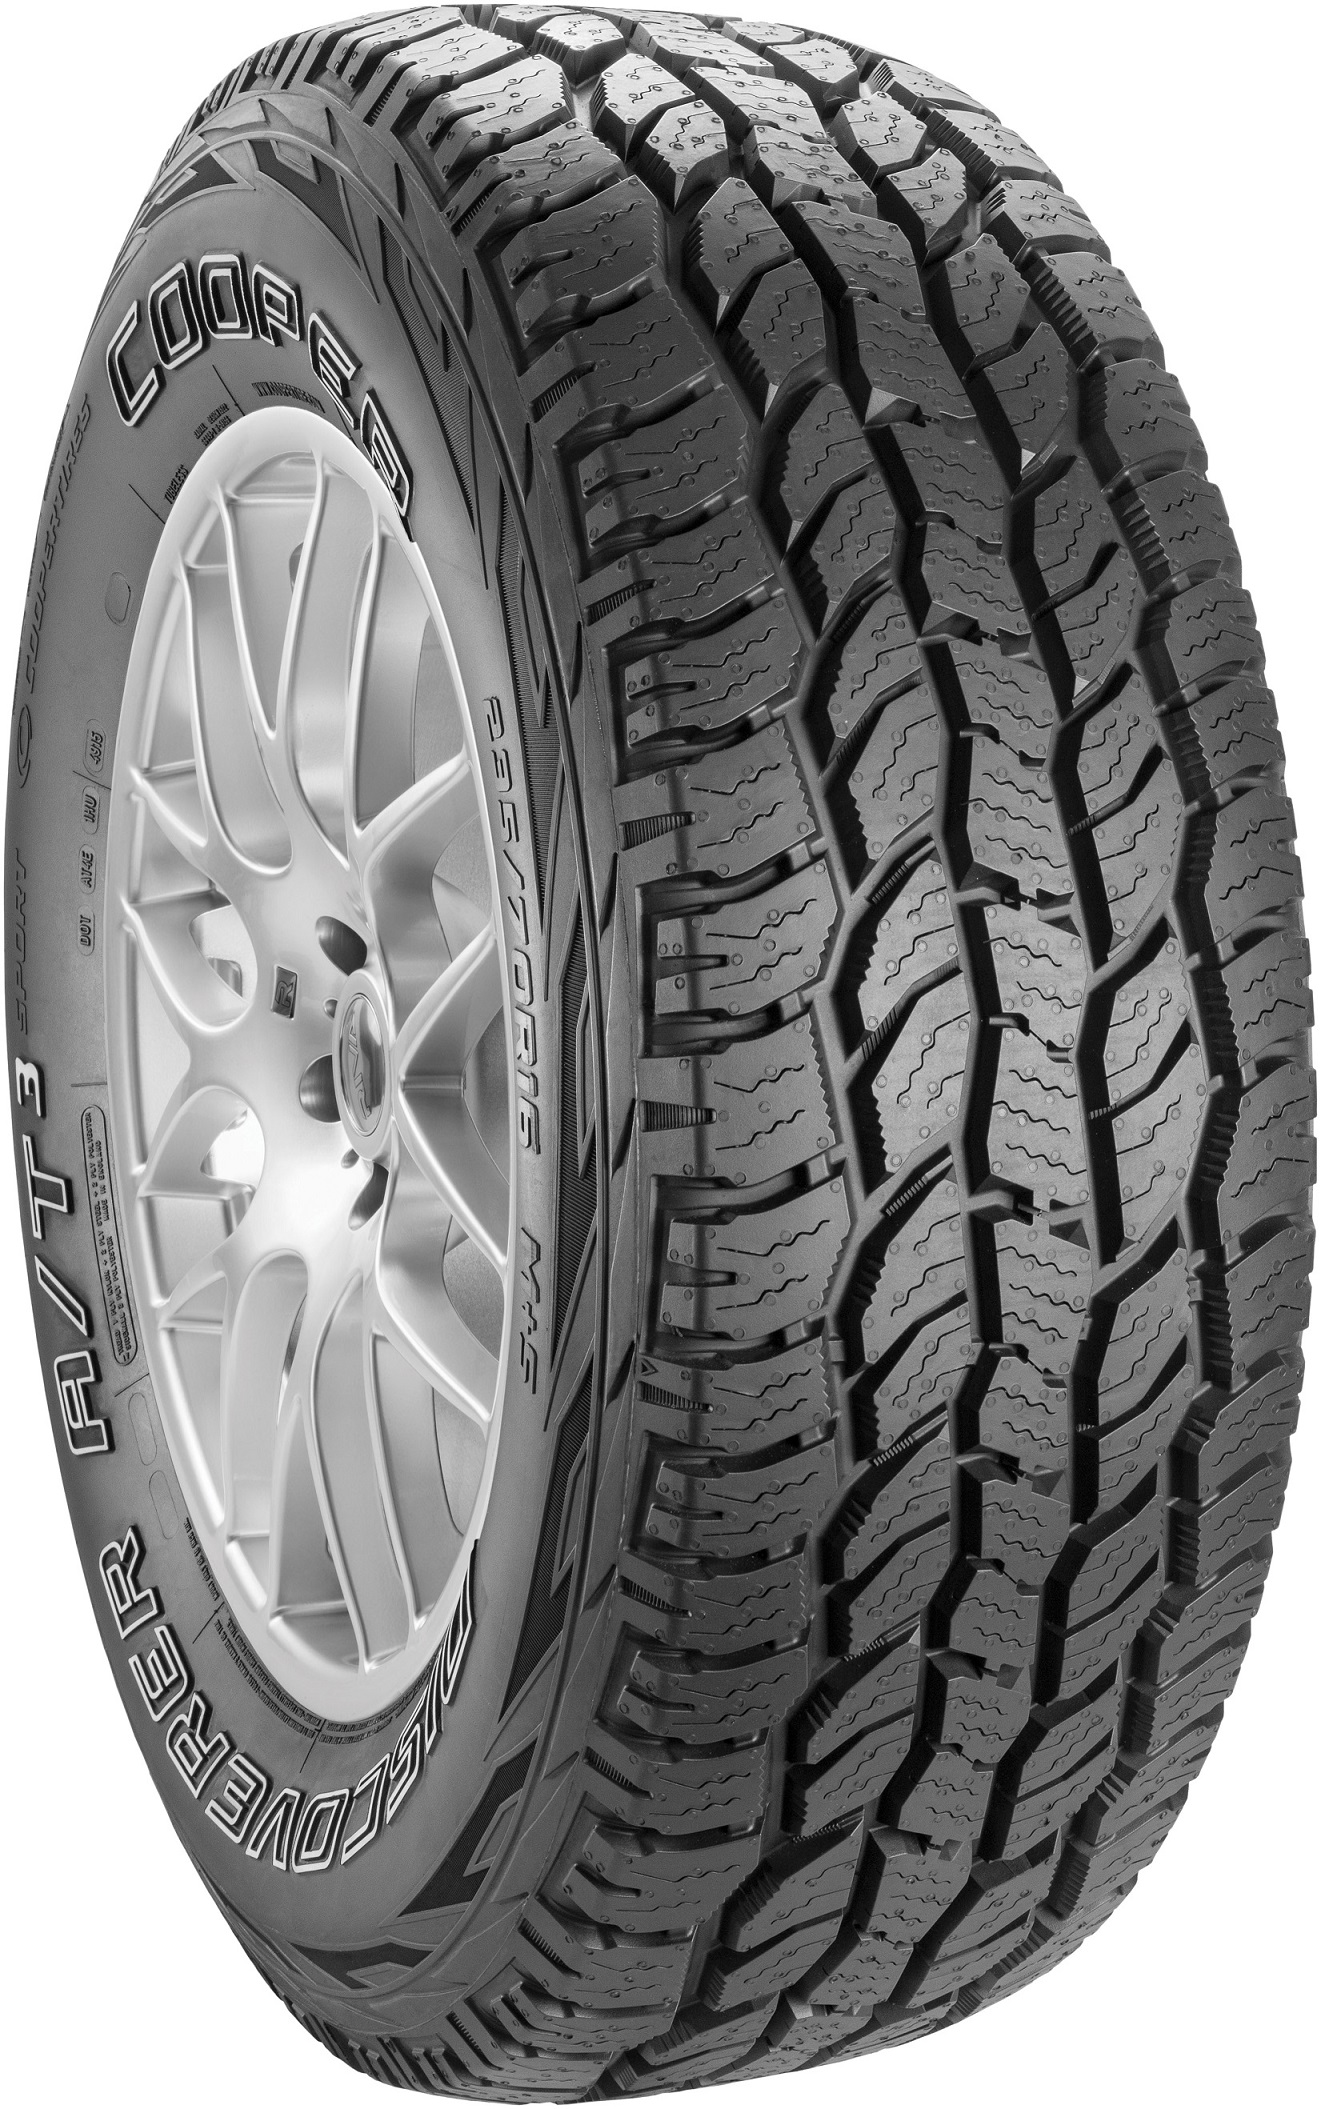 Gomme Nuove Cooper Tyres 265/60 R18 110T DISCOVERER AT3 SP2 pneumatici nuovi Estivo